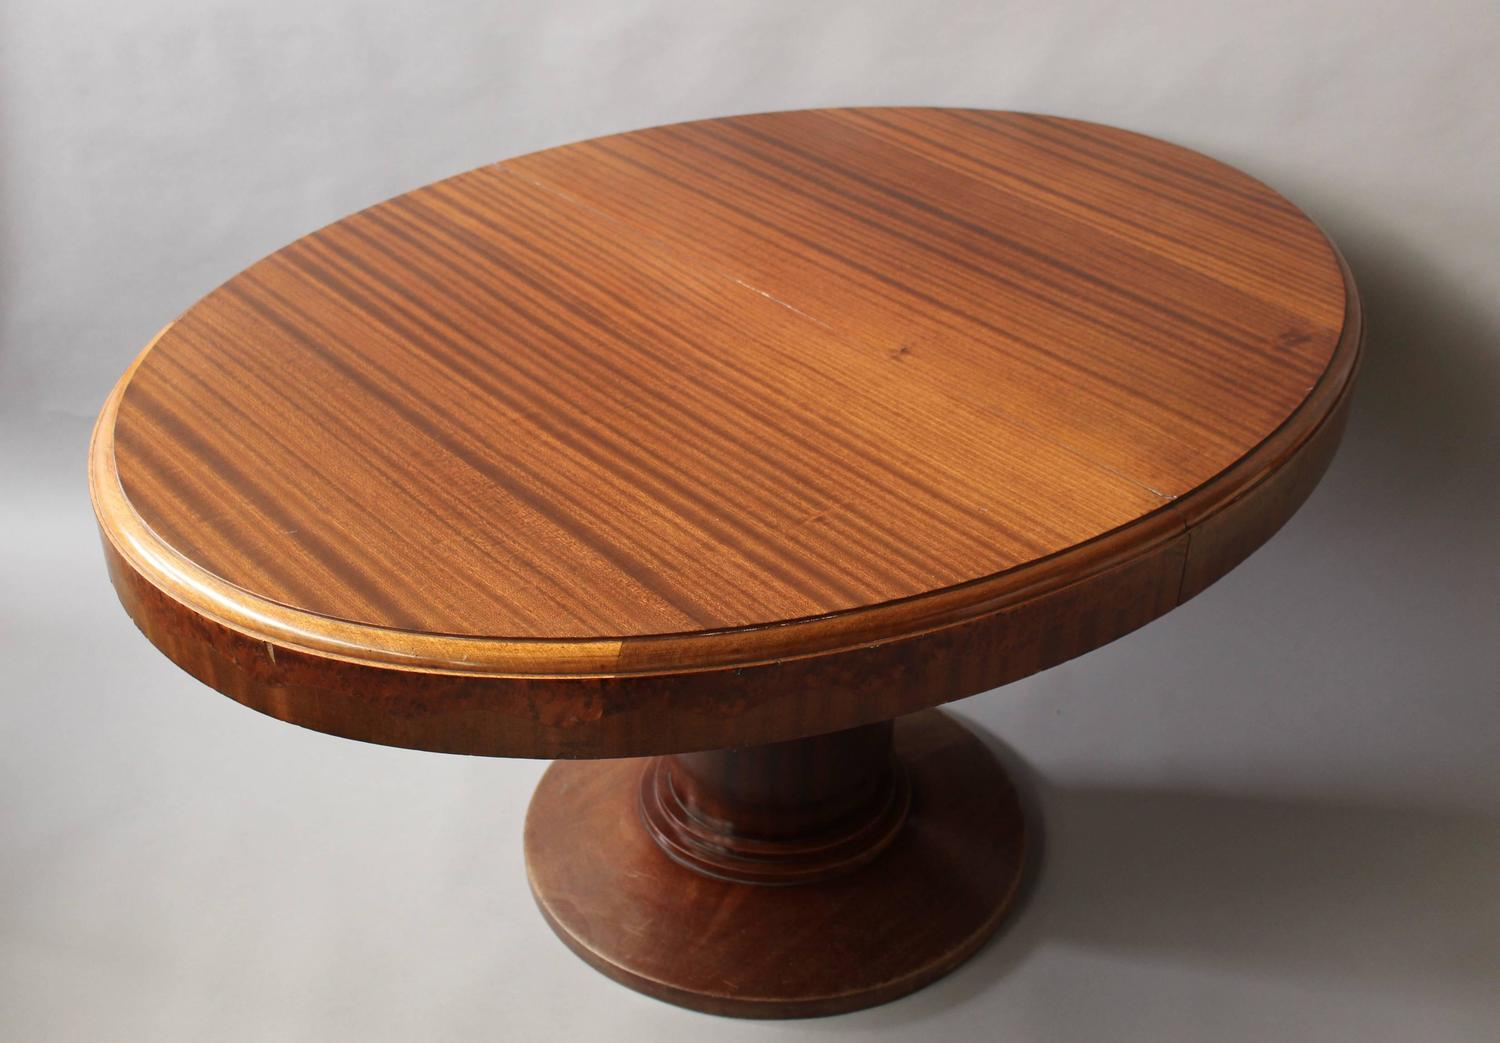 Fine French Art Deco Mahogany and Burl Elm Pedestal Oval  : 1397Tablevague11z from www.1stdibs.com size 1500 x 1043 jpeg 109kB